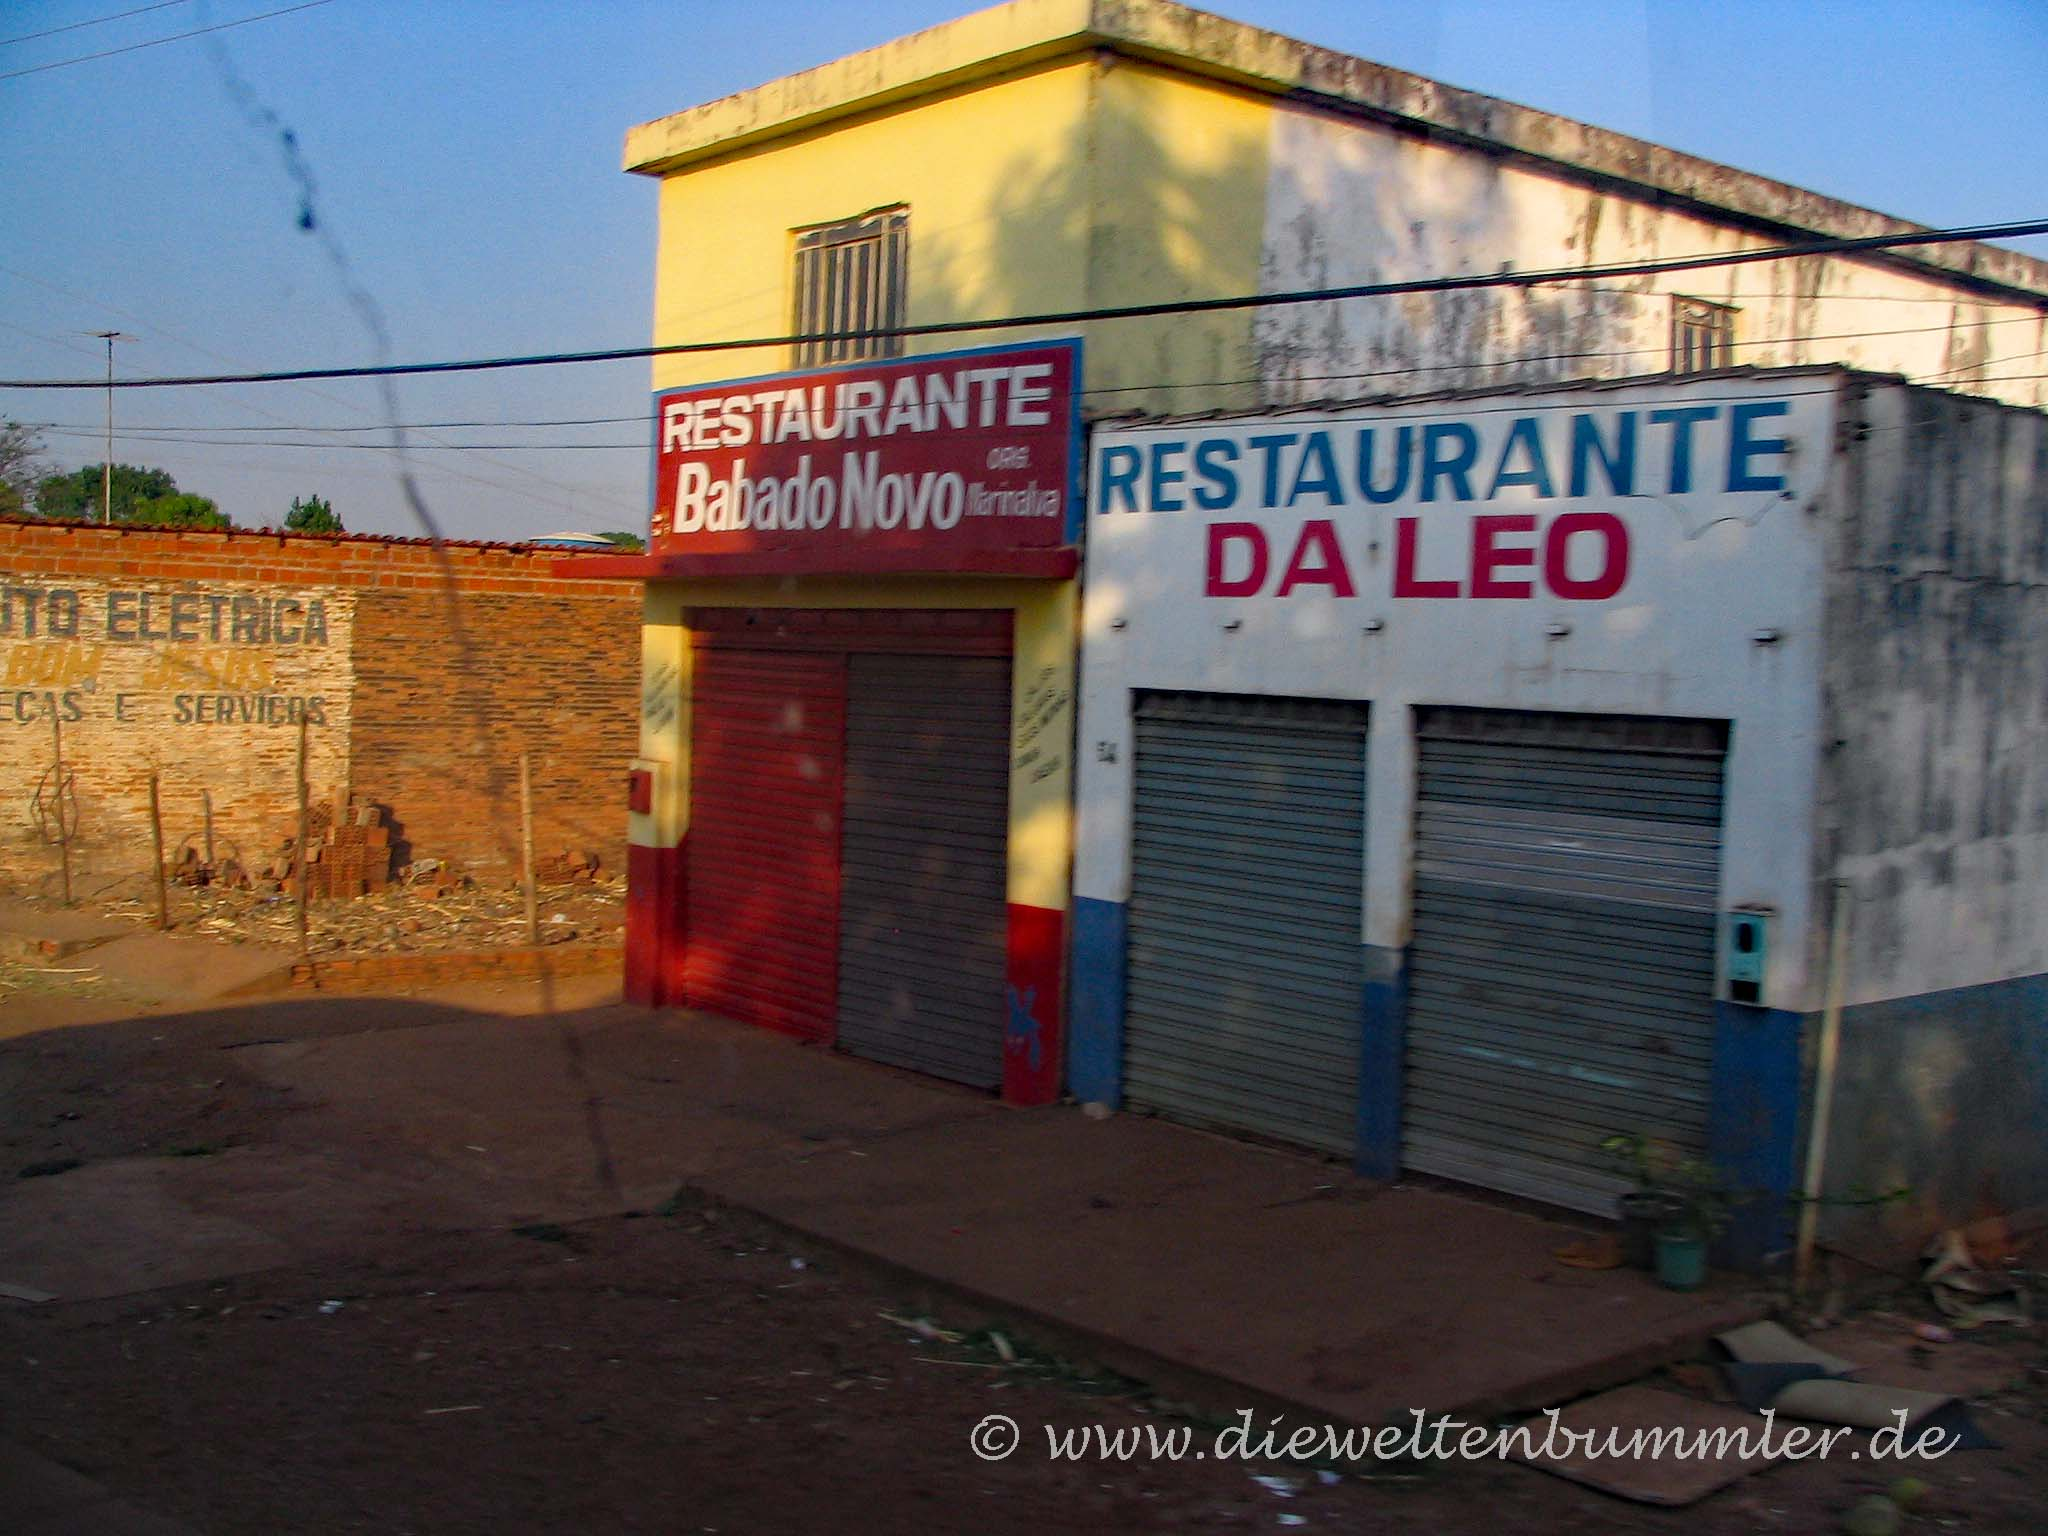 Restaurant in Brasilien